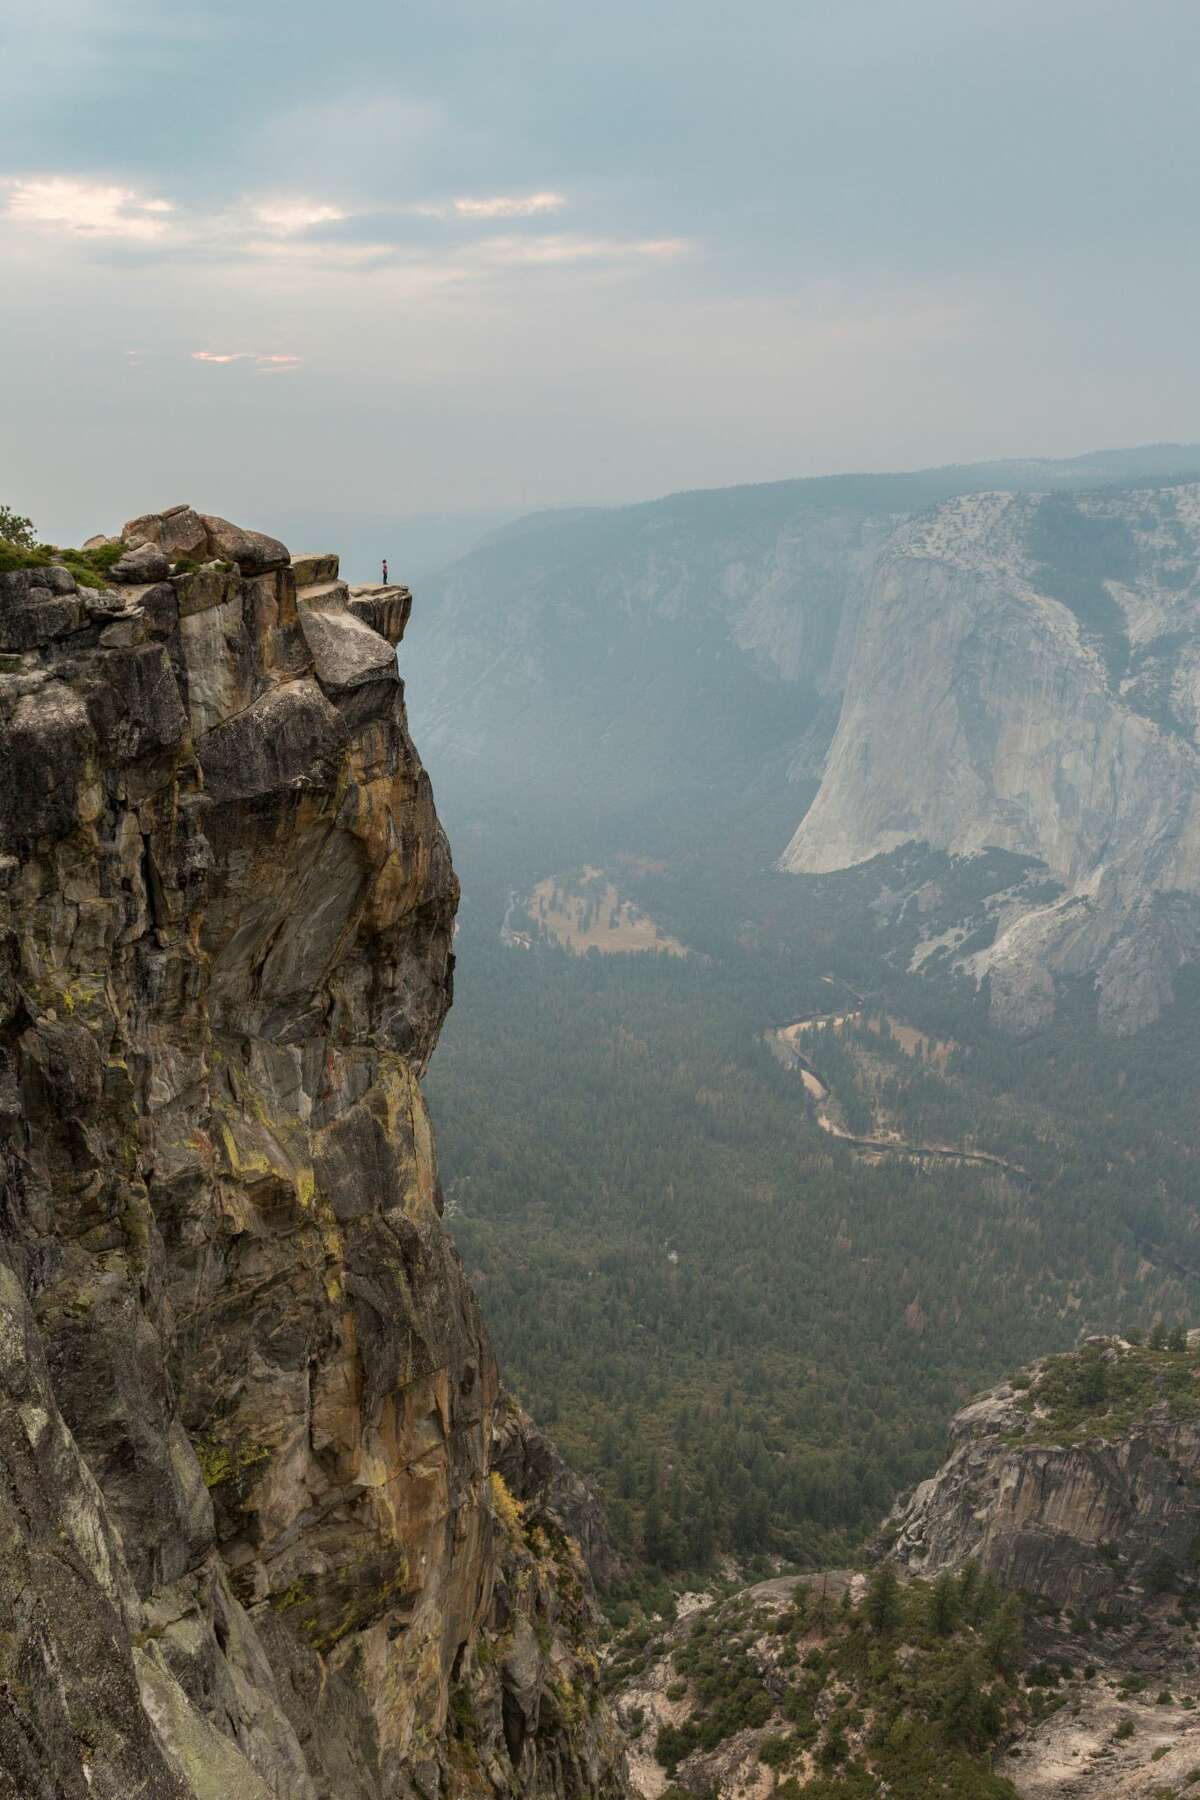 A man and woman fell from the Taft Point View in Yosemite Valley on Thursday.